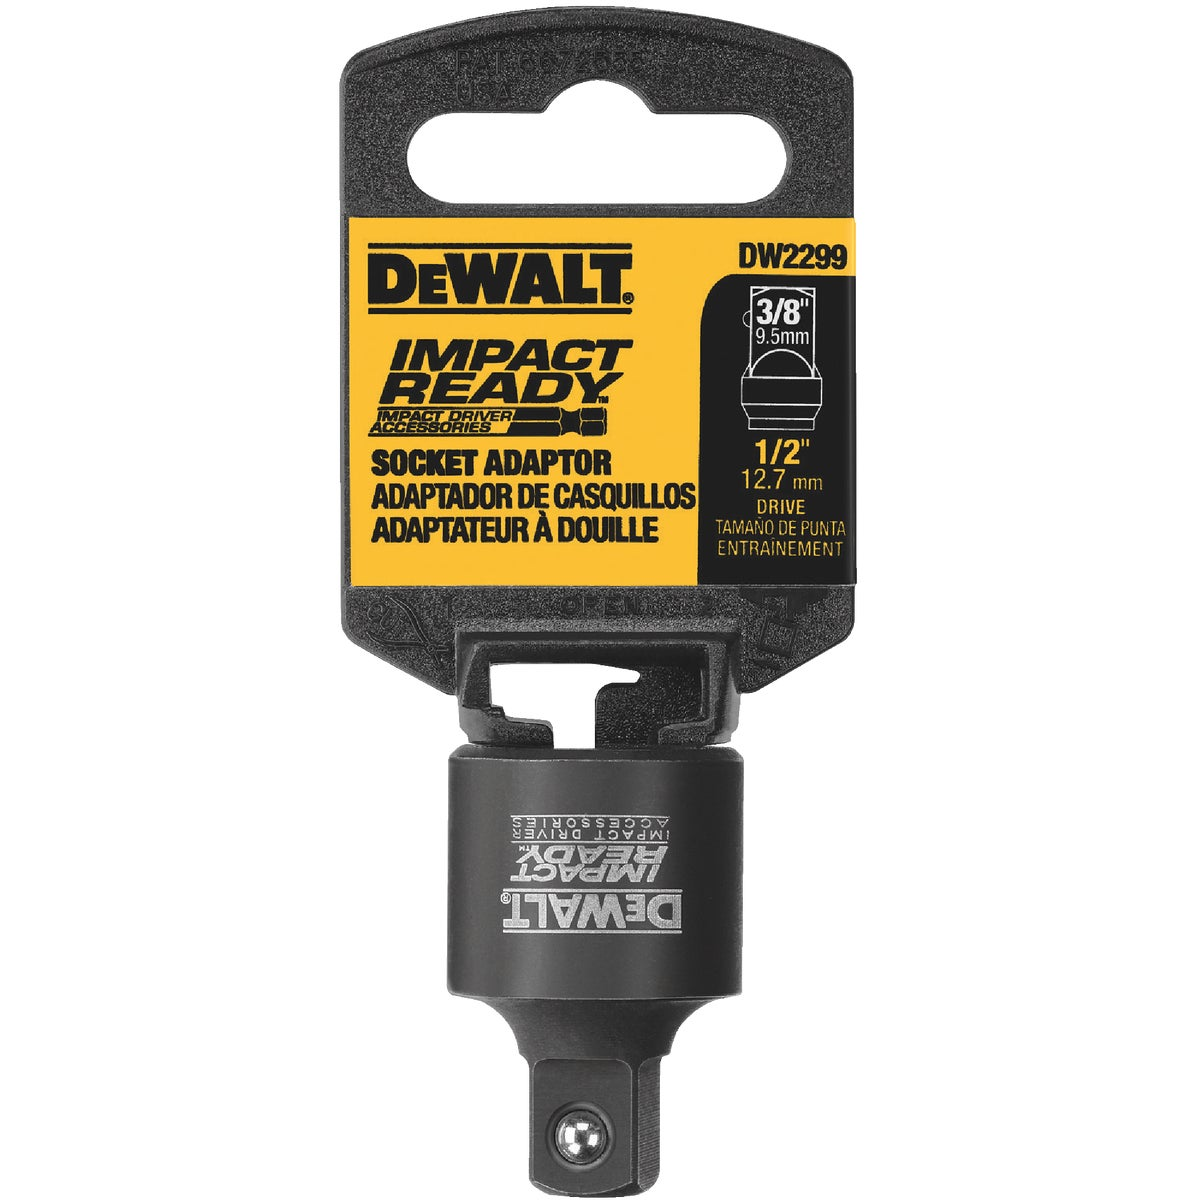 1/2 TO 3/8 SQUARE ANVIL - DW2299 by DeWalt